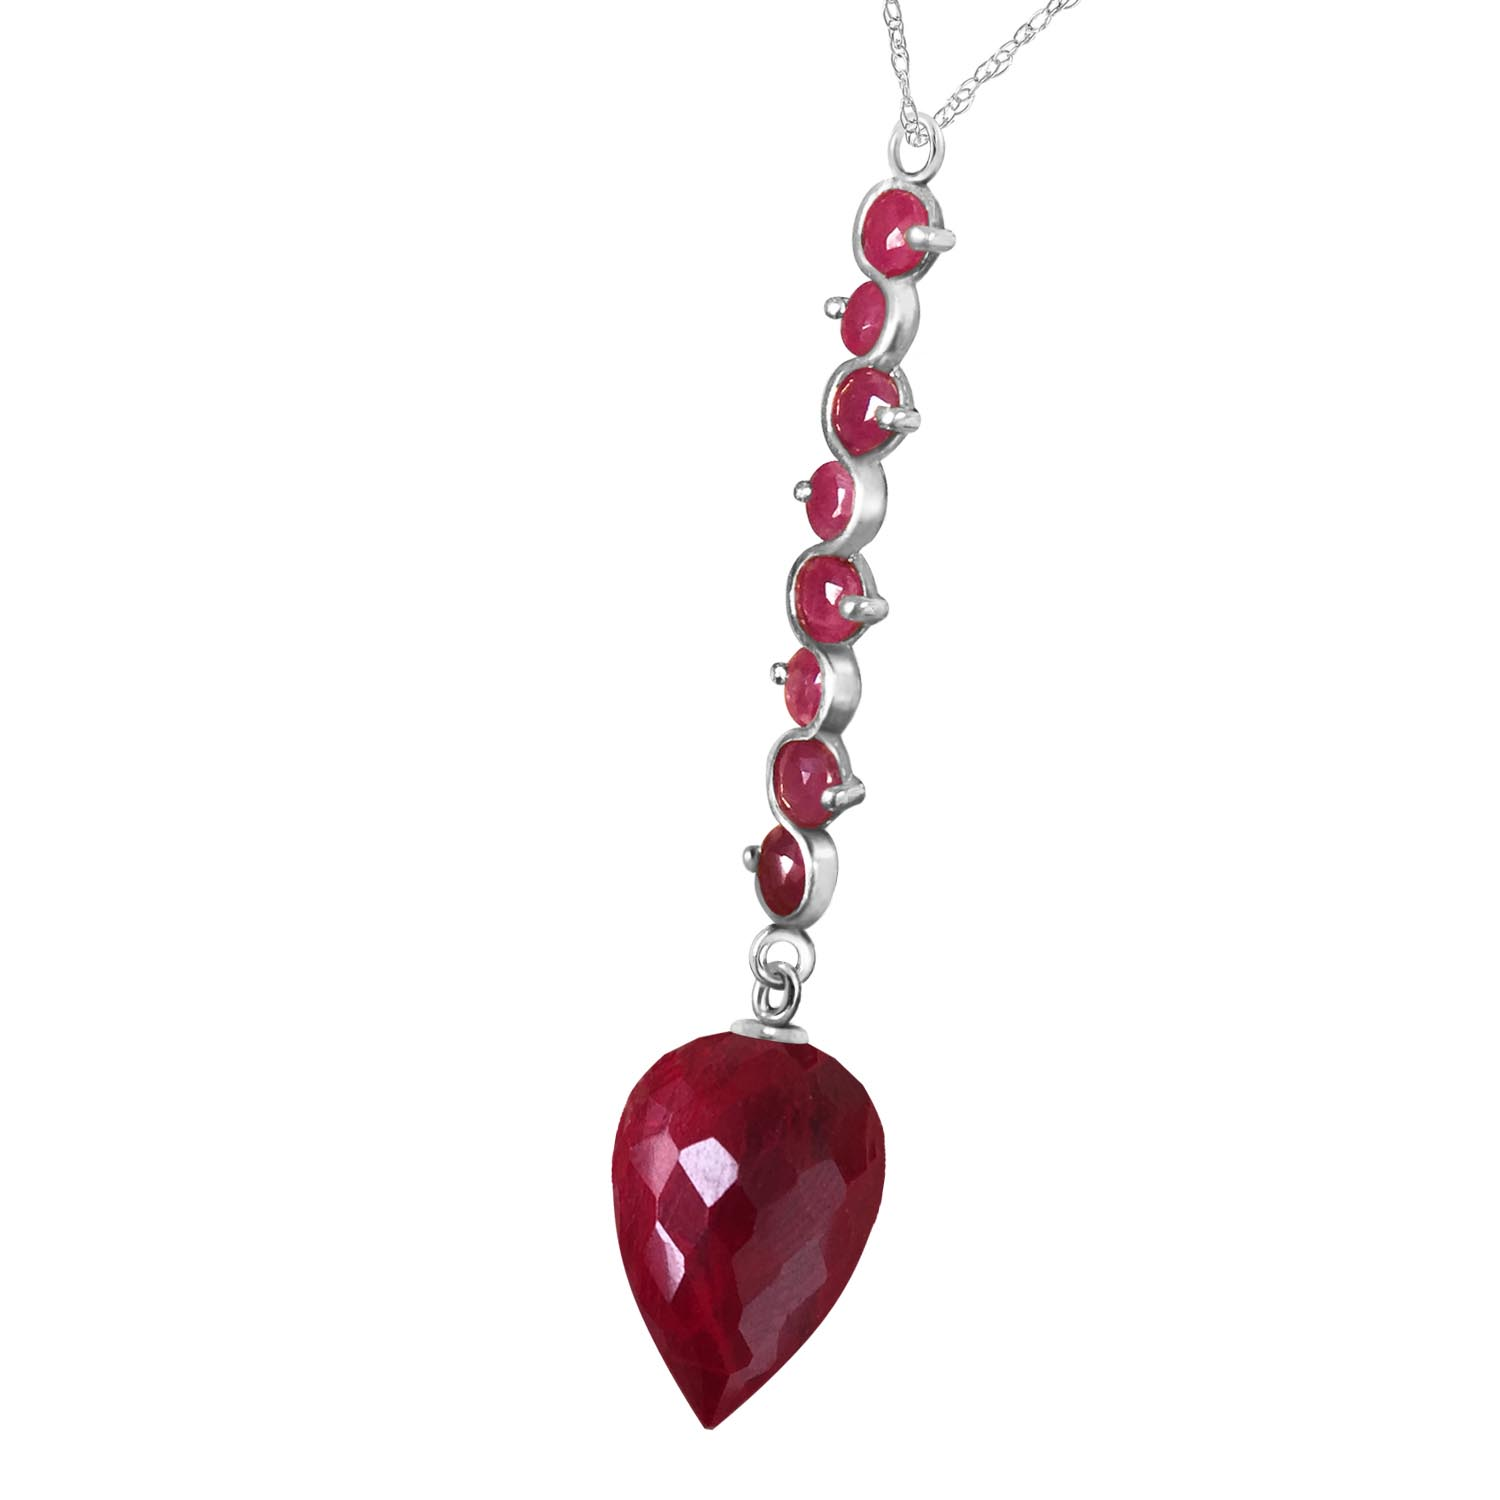 Ruby Briolette Pendant Necklace 14.55ctw in 9ct White Gold